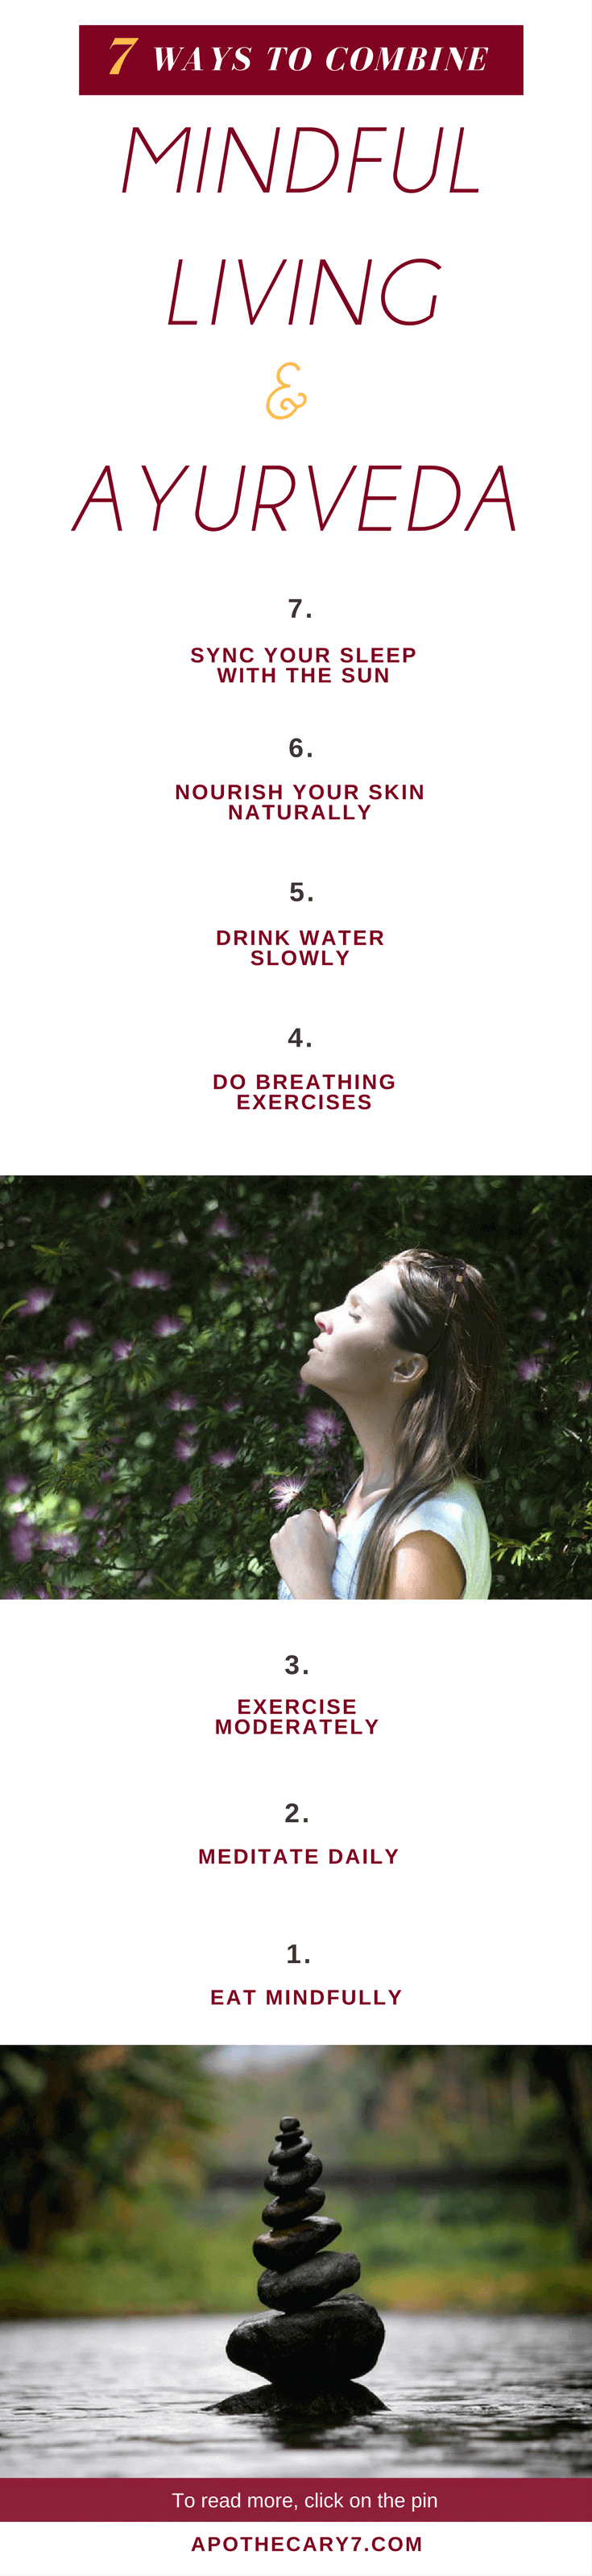 Ever wondered how you could add some Ayurveda healing principles to your mindful living routine? If yes, then you'll love this article.